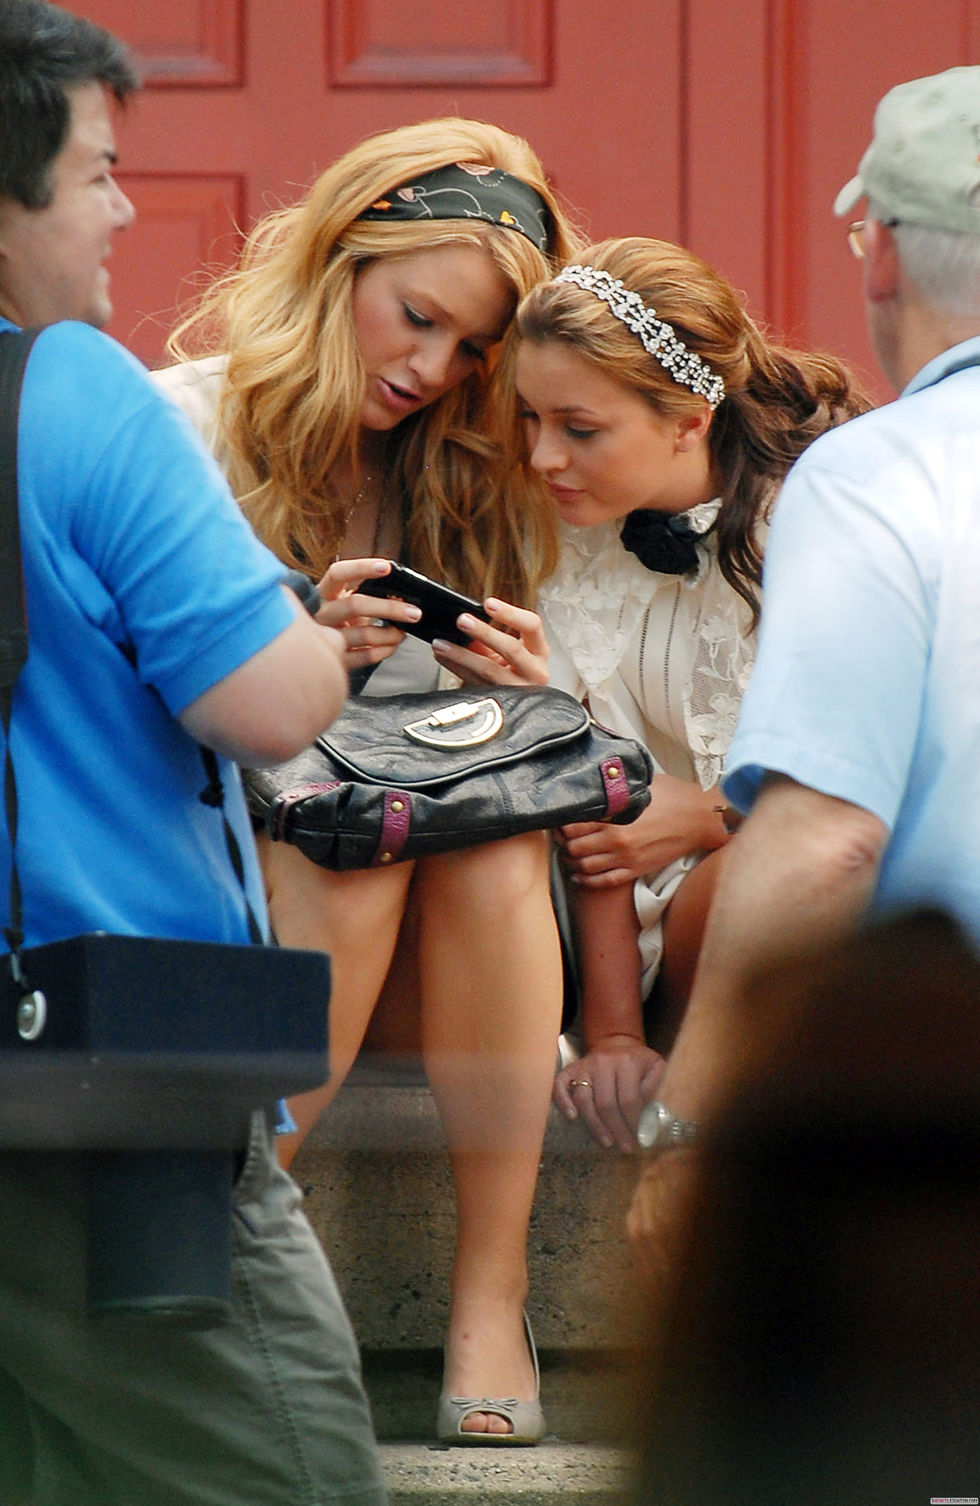 blake-lively-and-leighton-meester-leggy-candids-on-the-set-of-gossip-girl-01